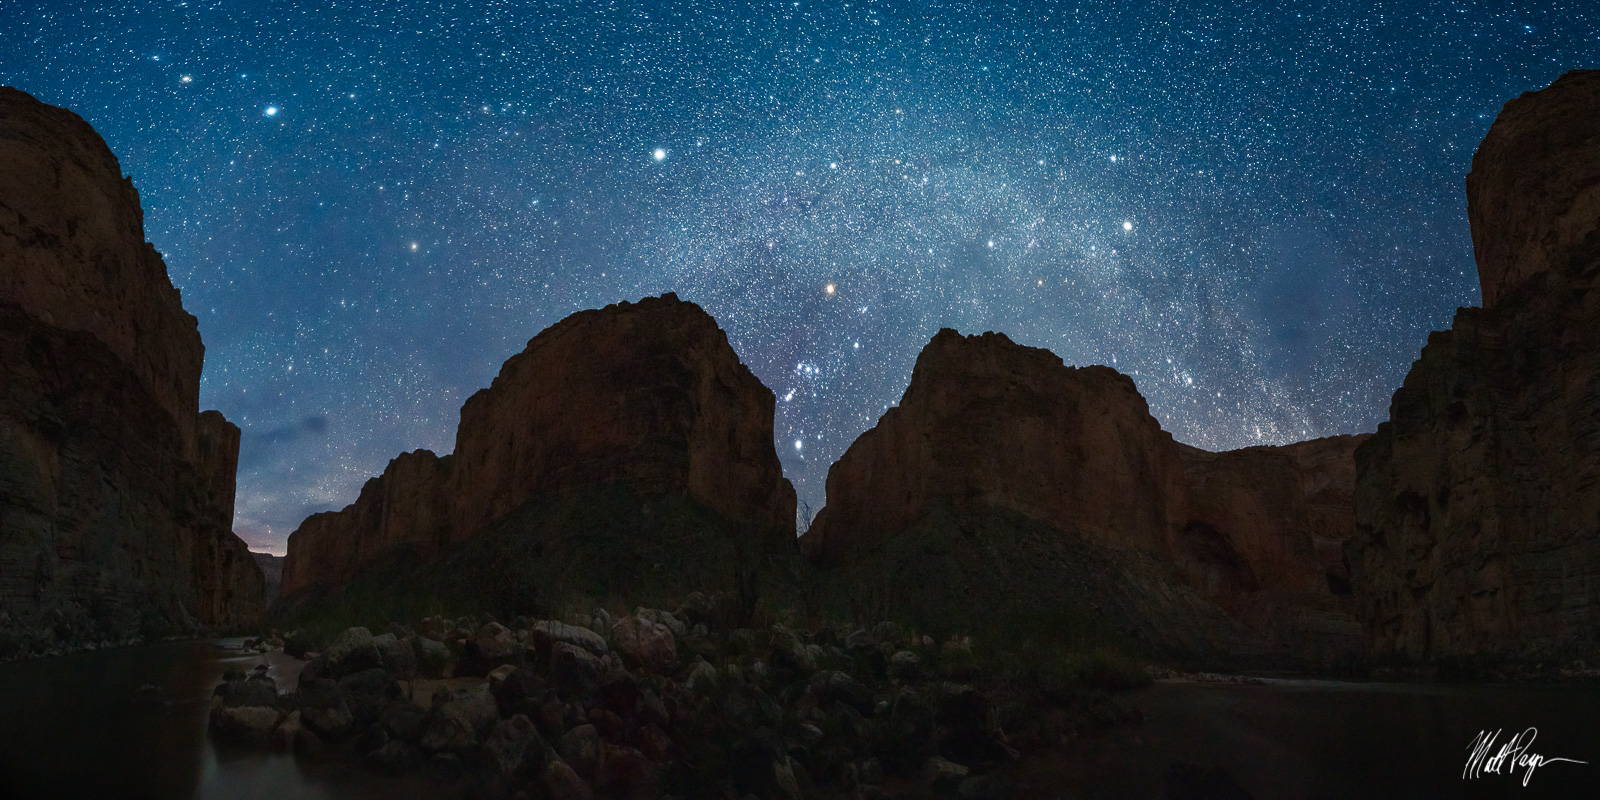 Grand Canyon National Park, Arizona, Colorado River, Darkness, Grand Canyon, Lower Saddle Campsite, Night, Nightscape, Orion's Belt, Rafting, photo